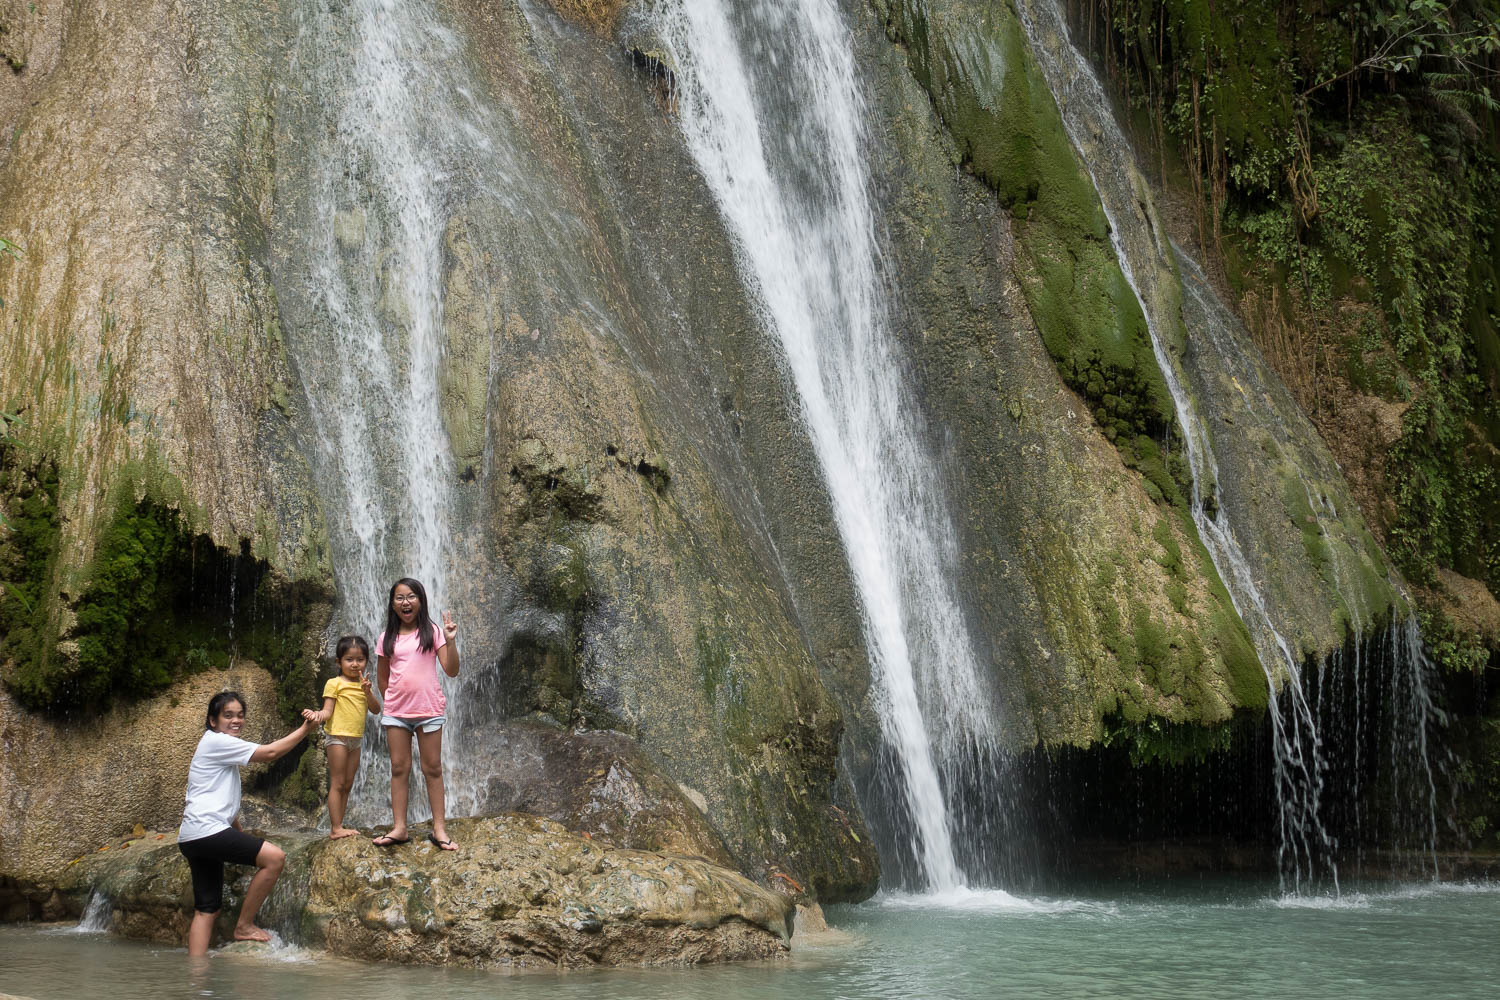 We found paradise by accident when we chanced upon Batlag Falls while looking for something else.